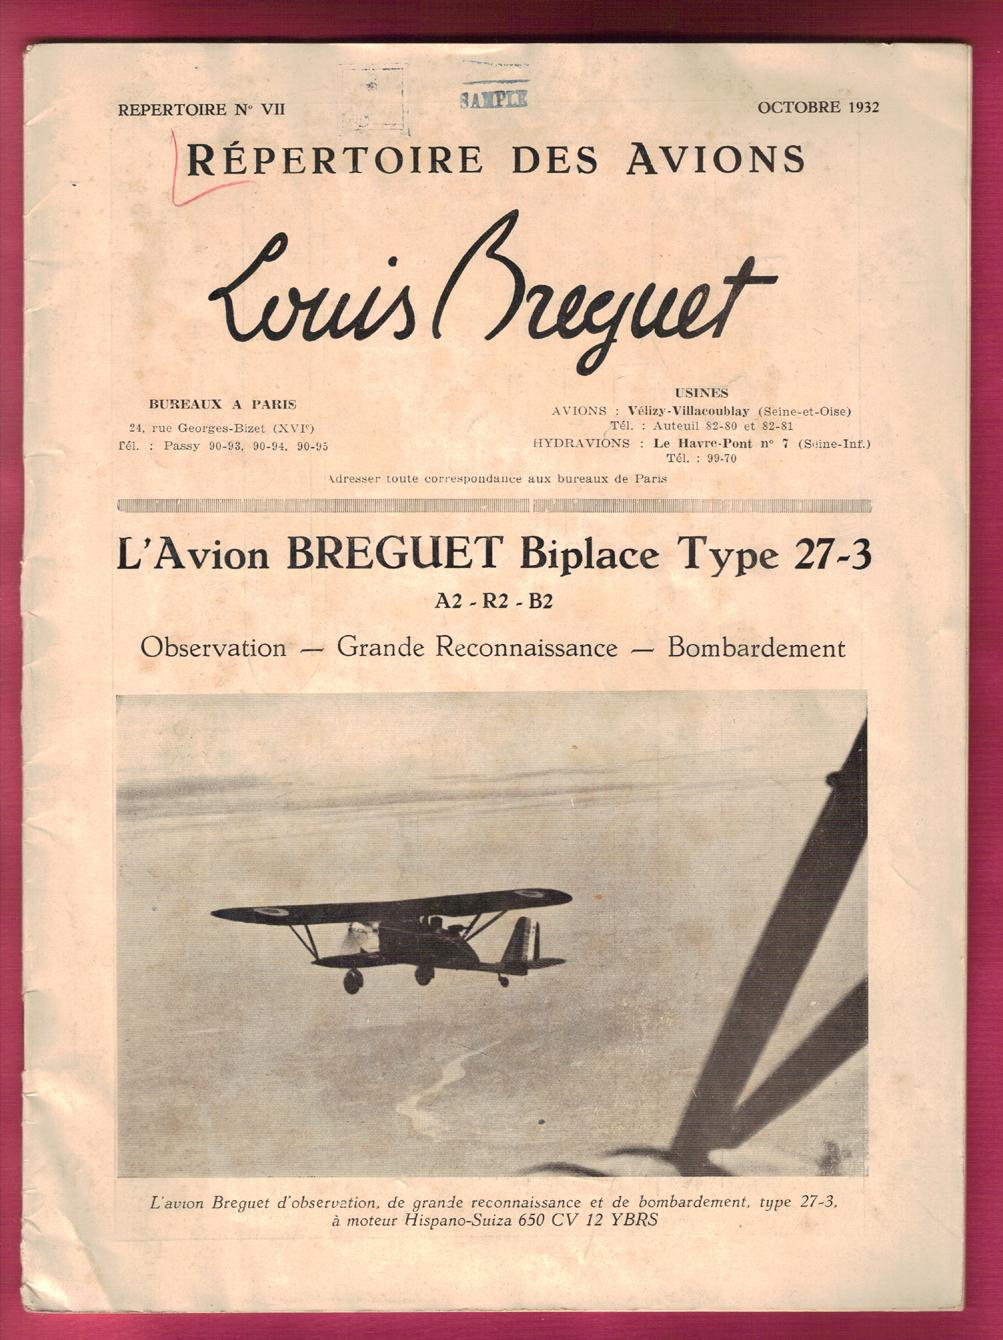 Repertoire Des Avion Louis Breguet / L'Avion BREGUET Biplace Type 27-3 / Octobre (October) 1932 (editors) Very Good Softcover Paris: Bureau de Paris, (October) 1932. Text in French. Wraps, 28 pp. Very Good, Plus. Moderate cover soil, and really not much in the way of peripher